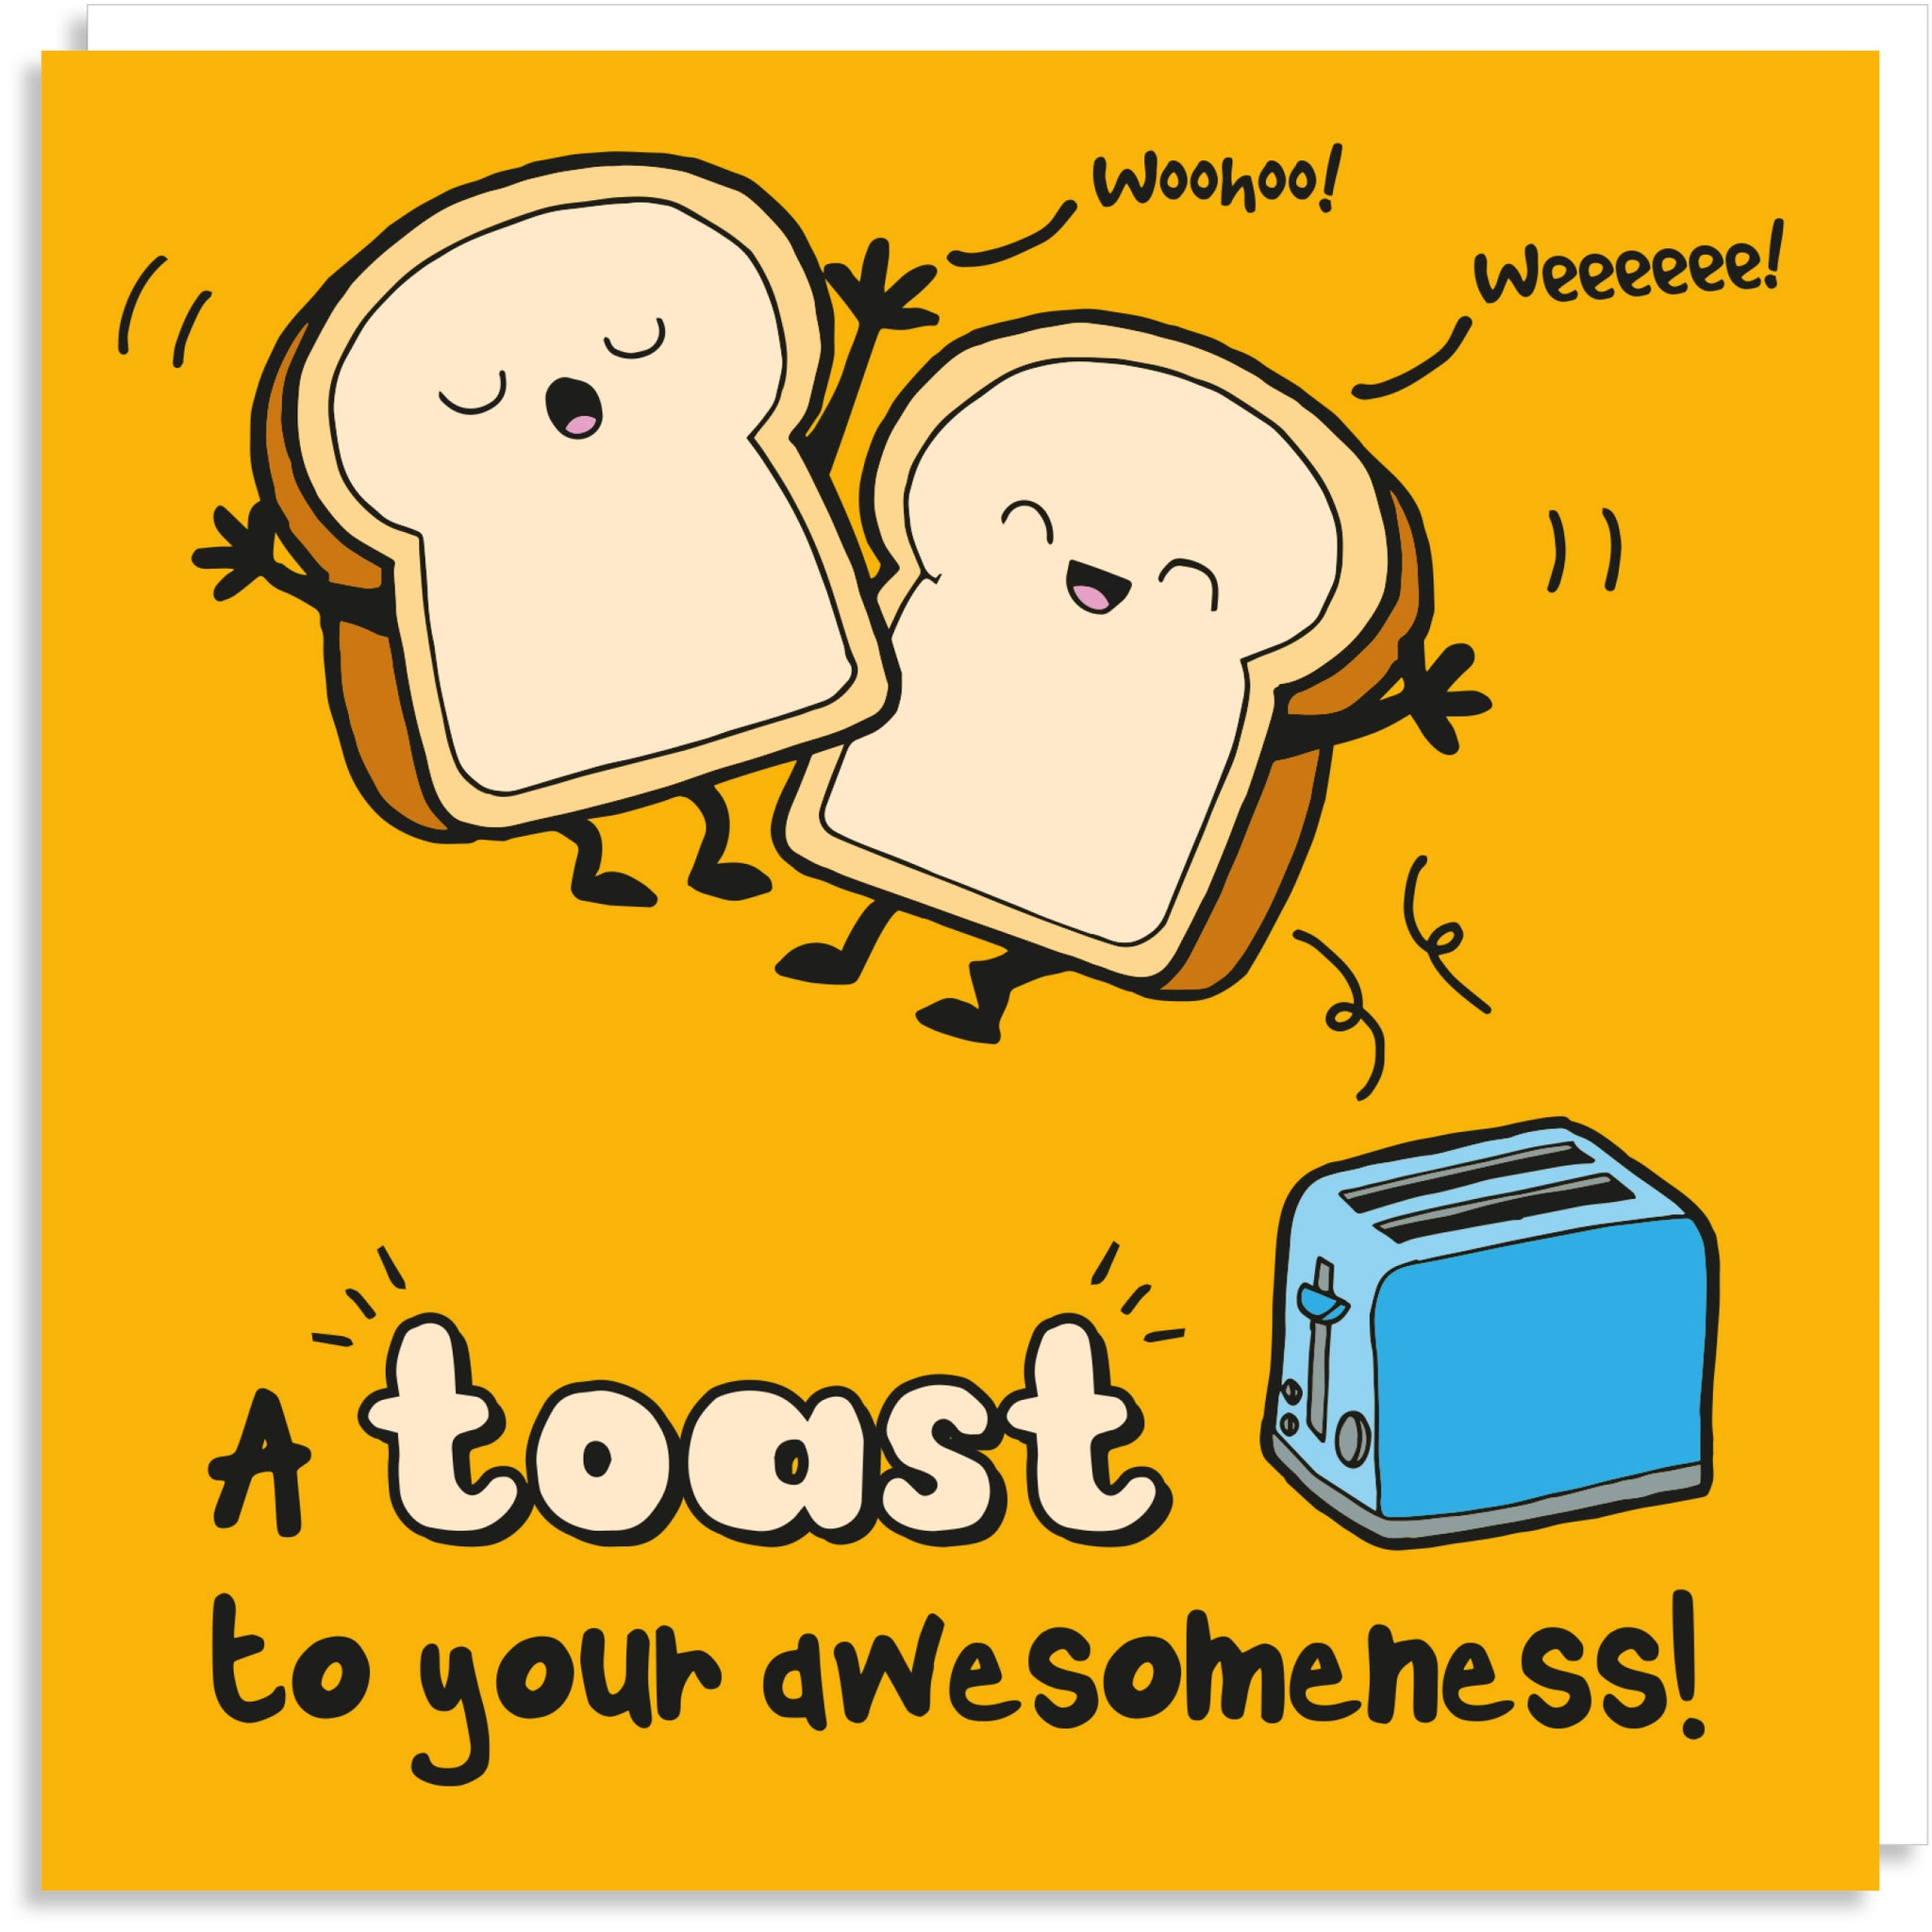 Awesome toast greeting card